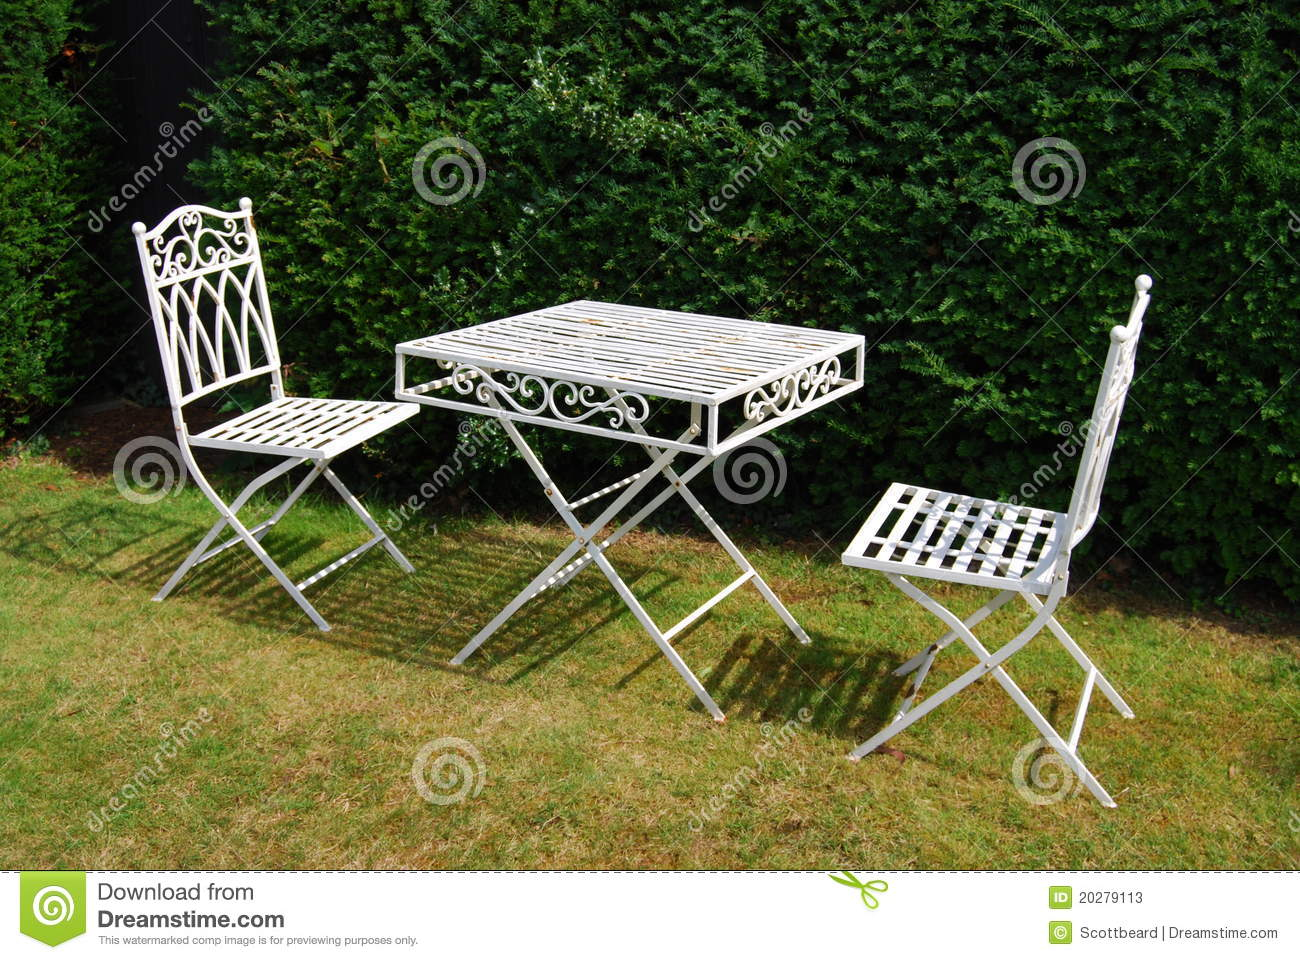 Download comp - White Metal Garden Furniture Table And Two Chairs Stock Image